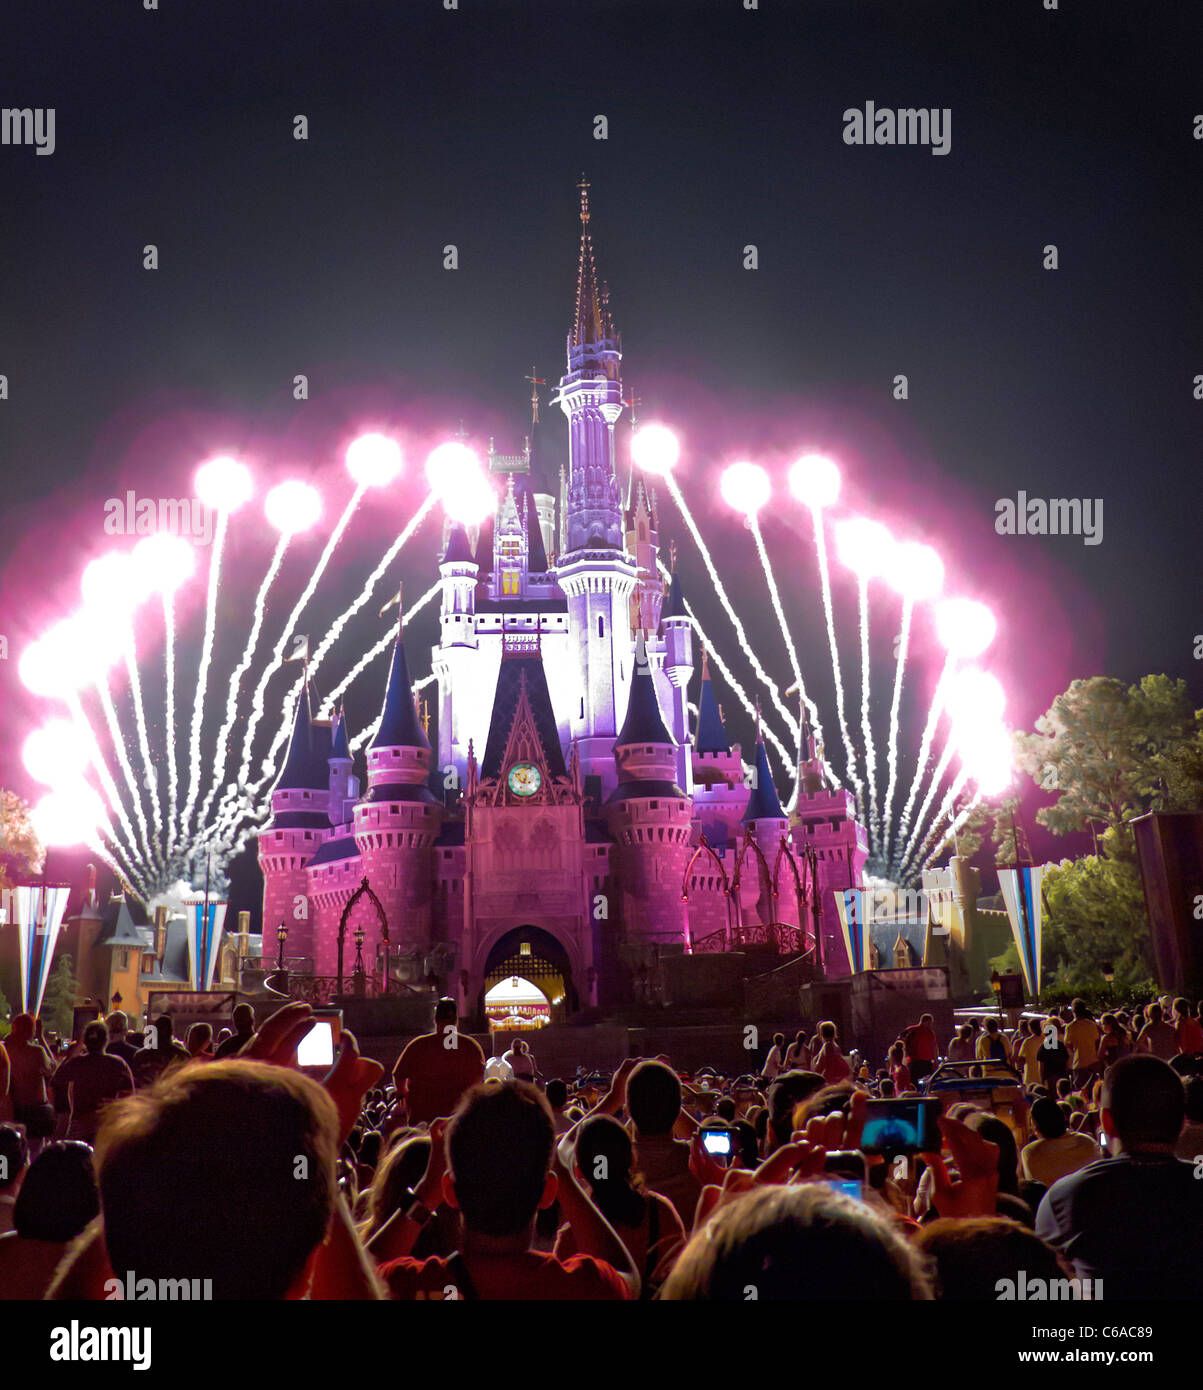 Fireworks explode over Cinderella's Castle in Magic Kingdom, Disney World, FL, while light show plays across castle's - Stock Photo